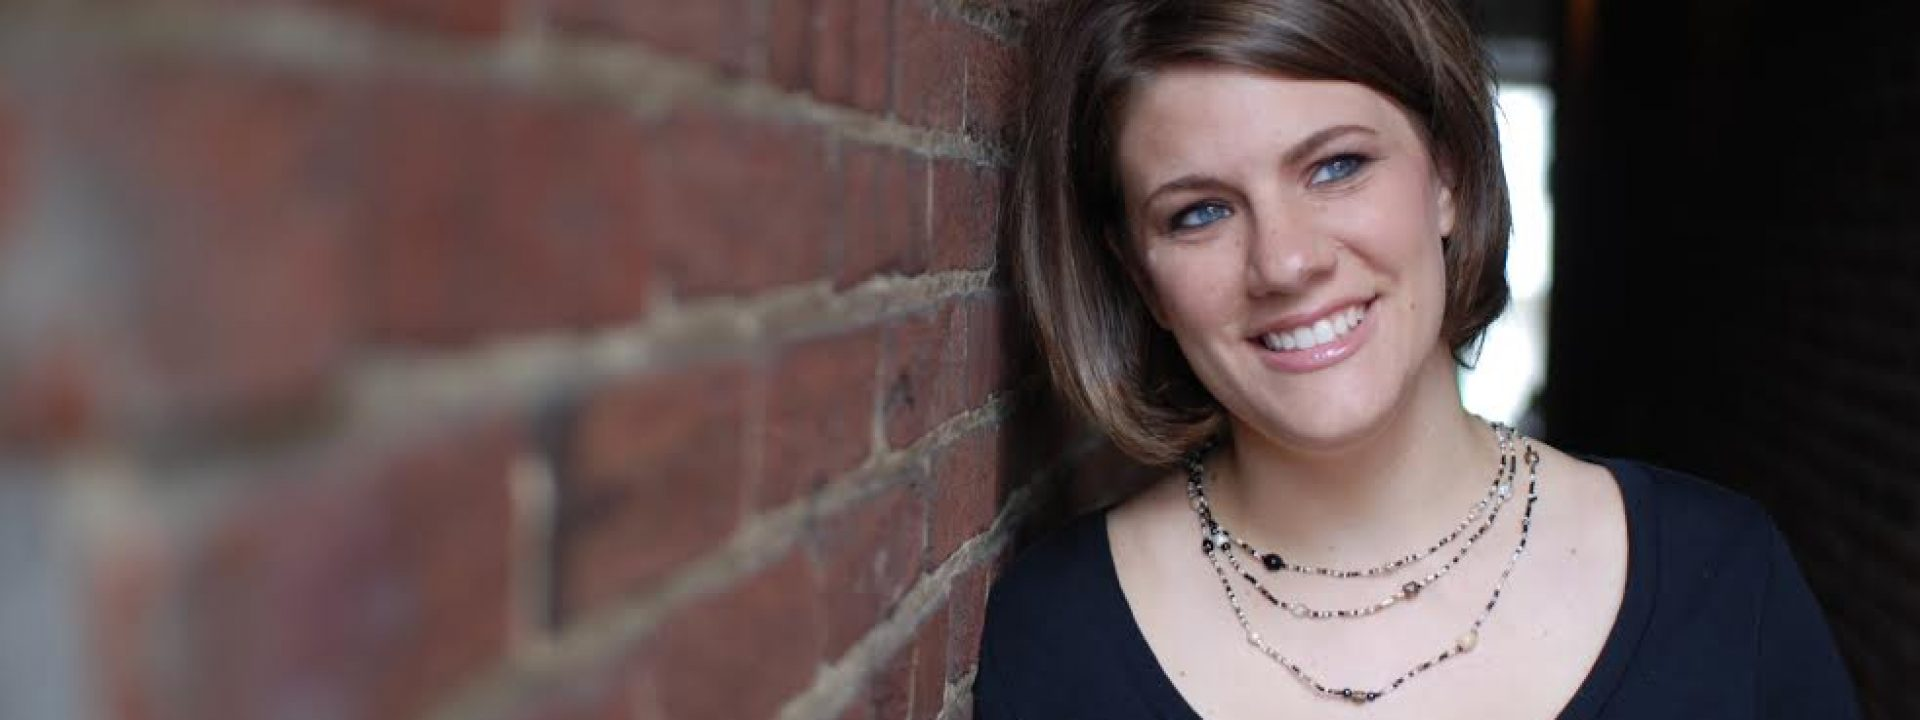 Rachel Held Evans (1981-2019): Asking Questions of Our Faith